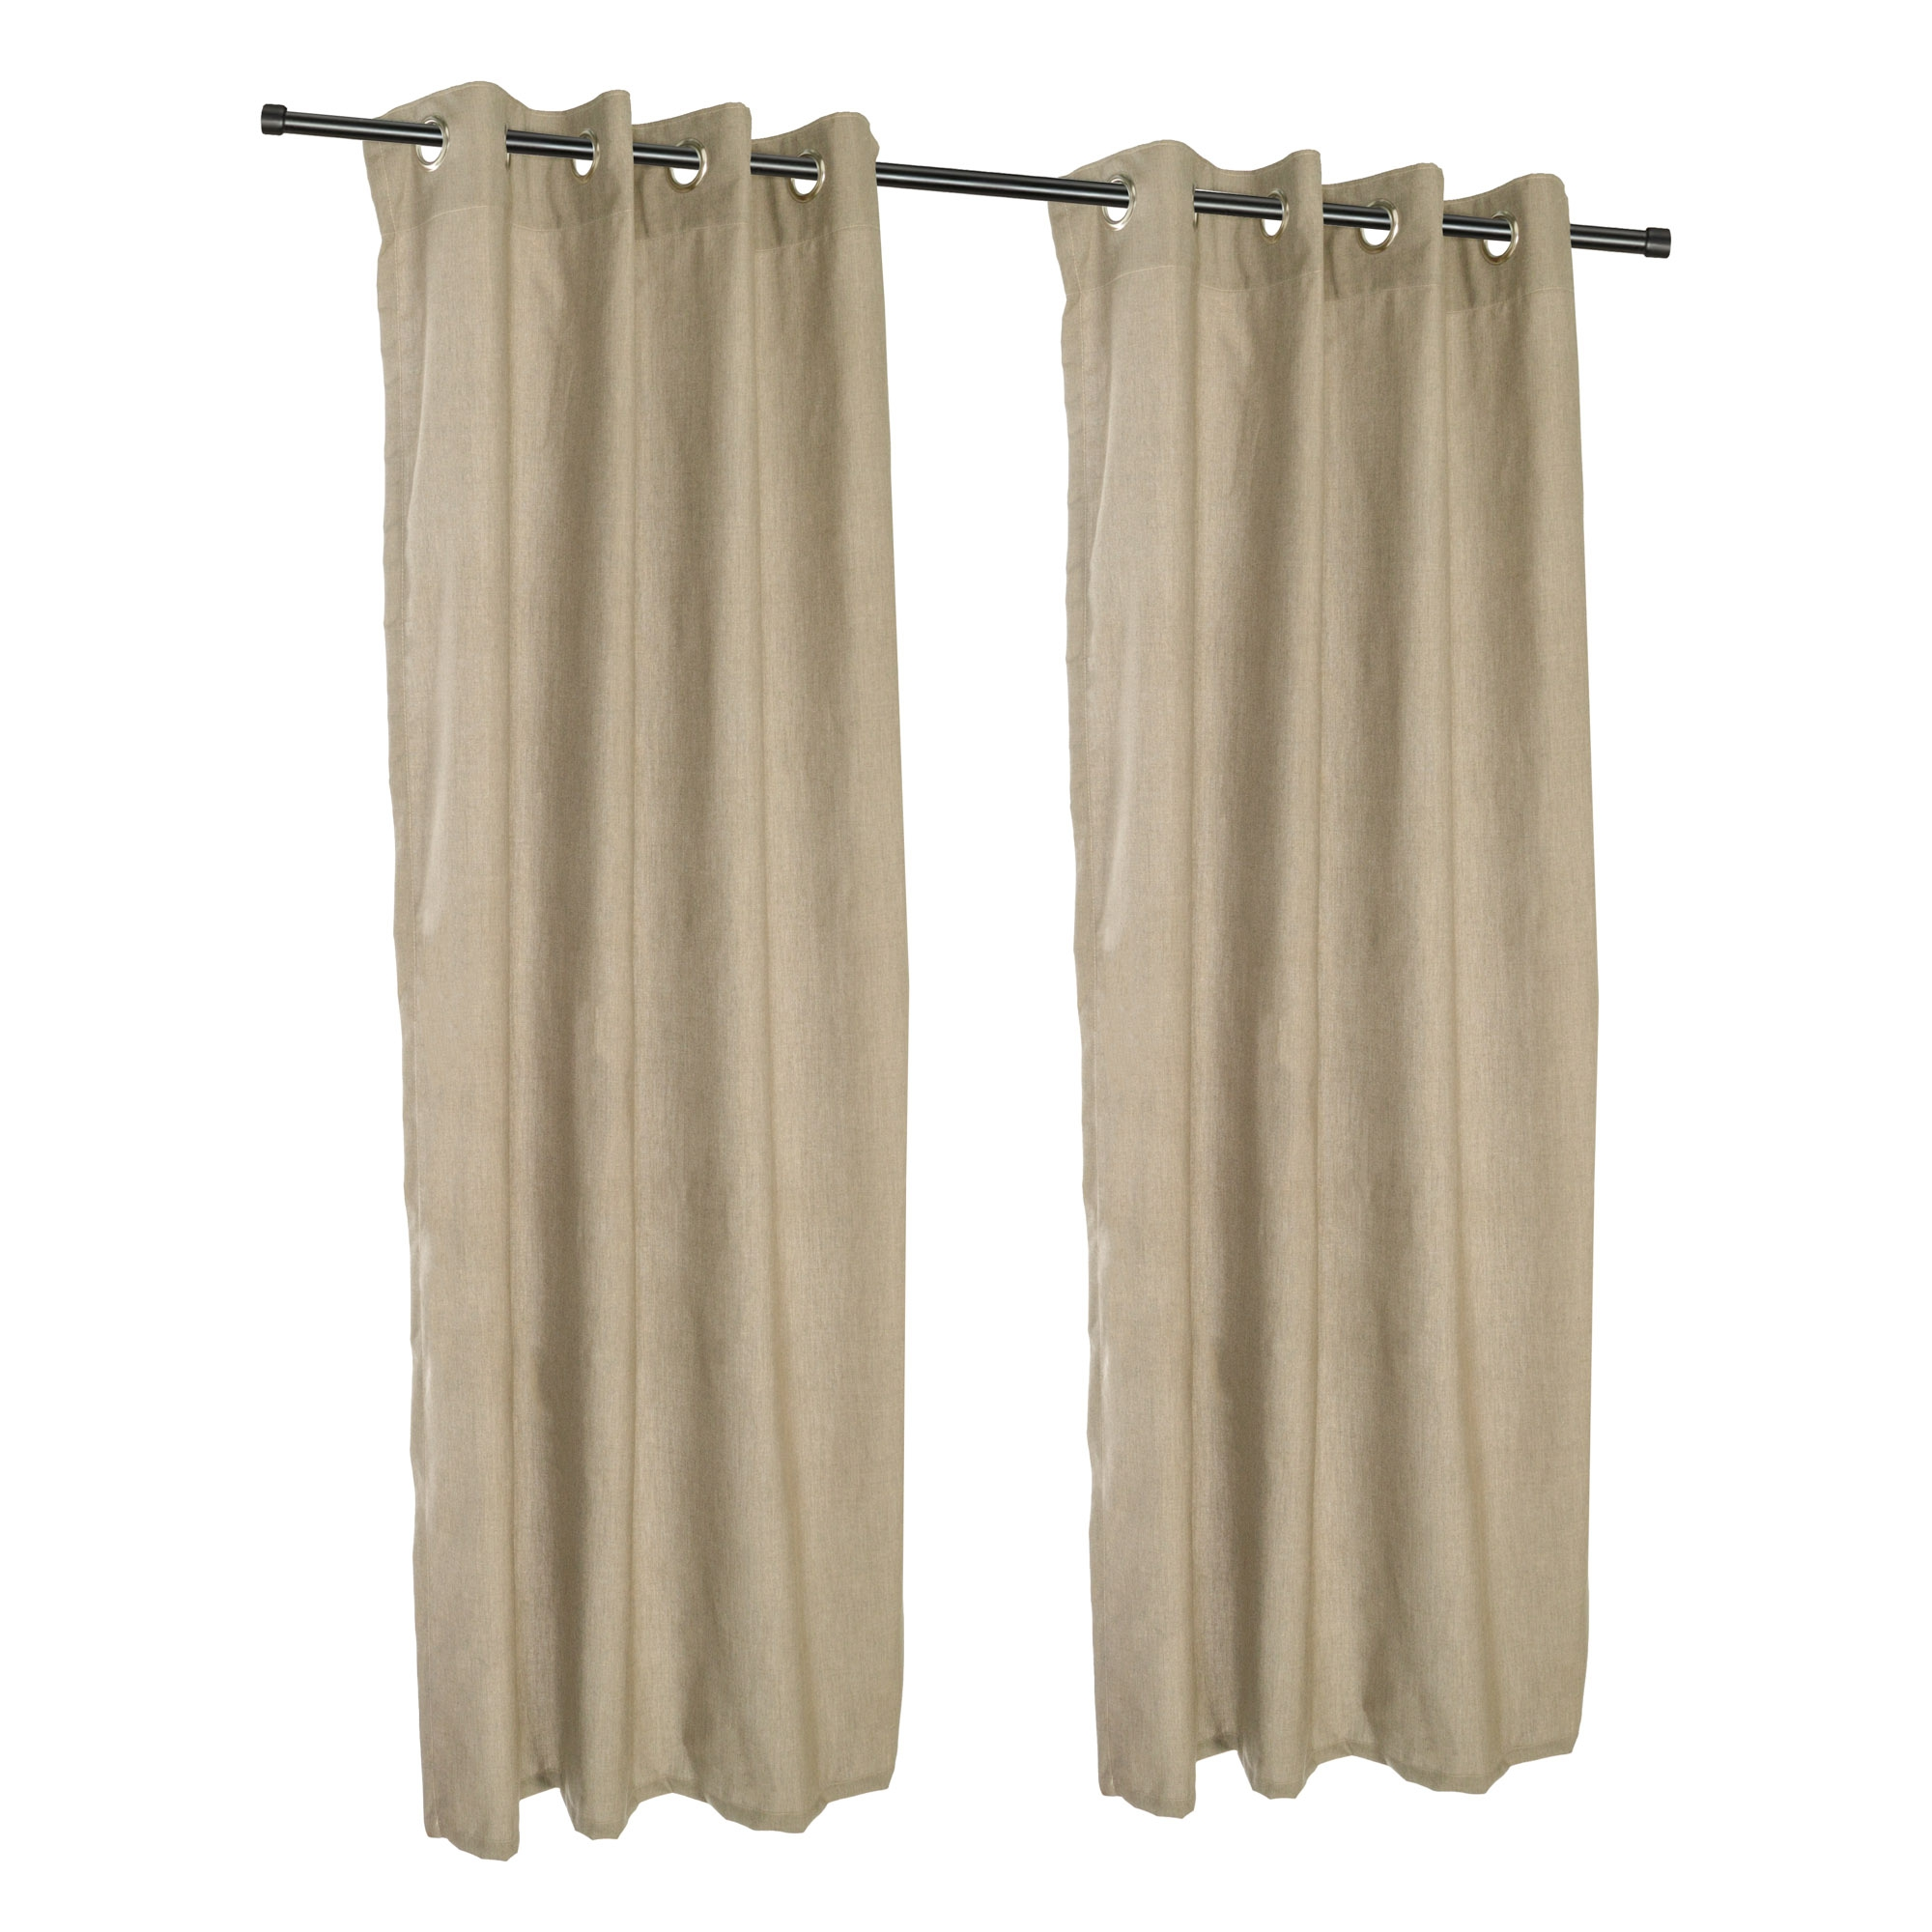 outdoor curtains sunbrella photo - 2